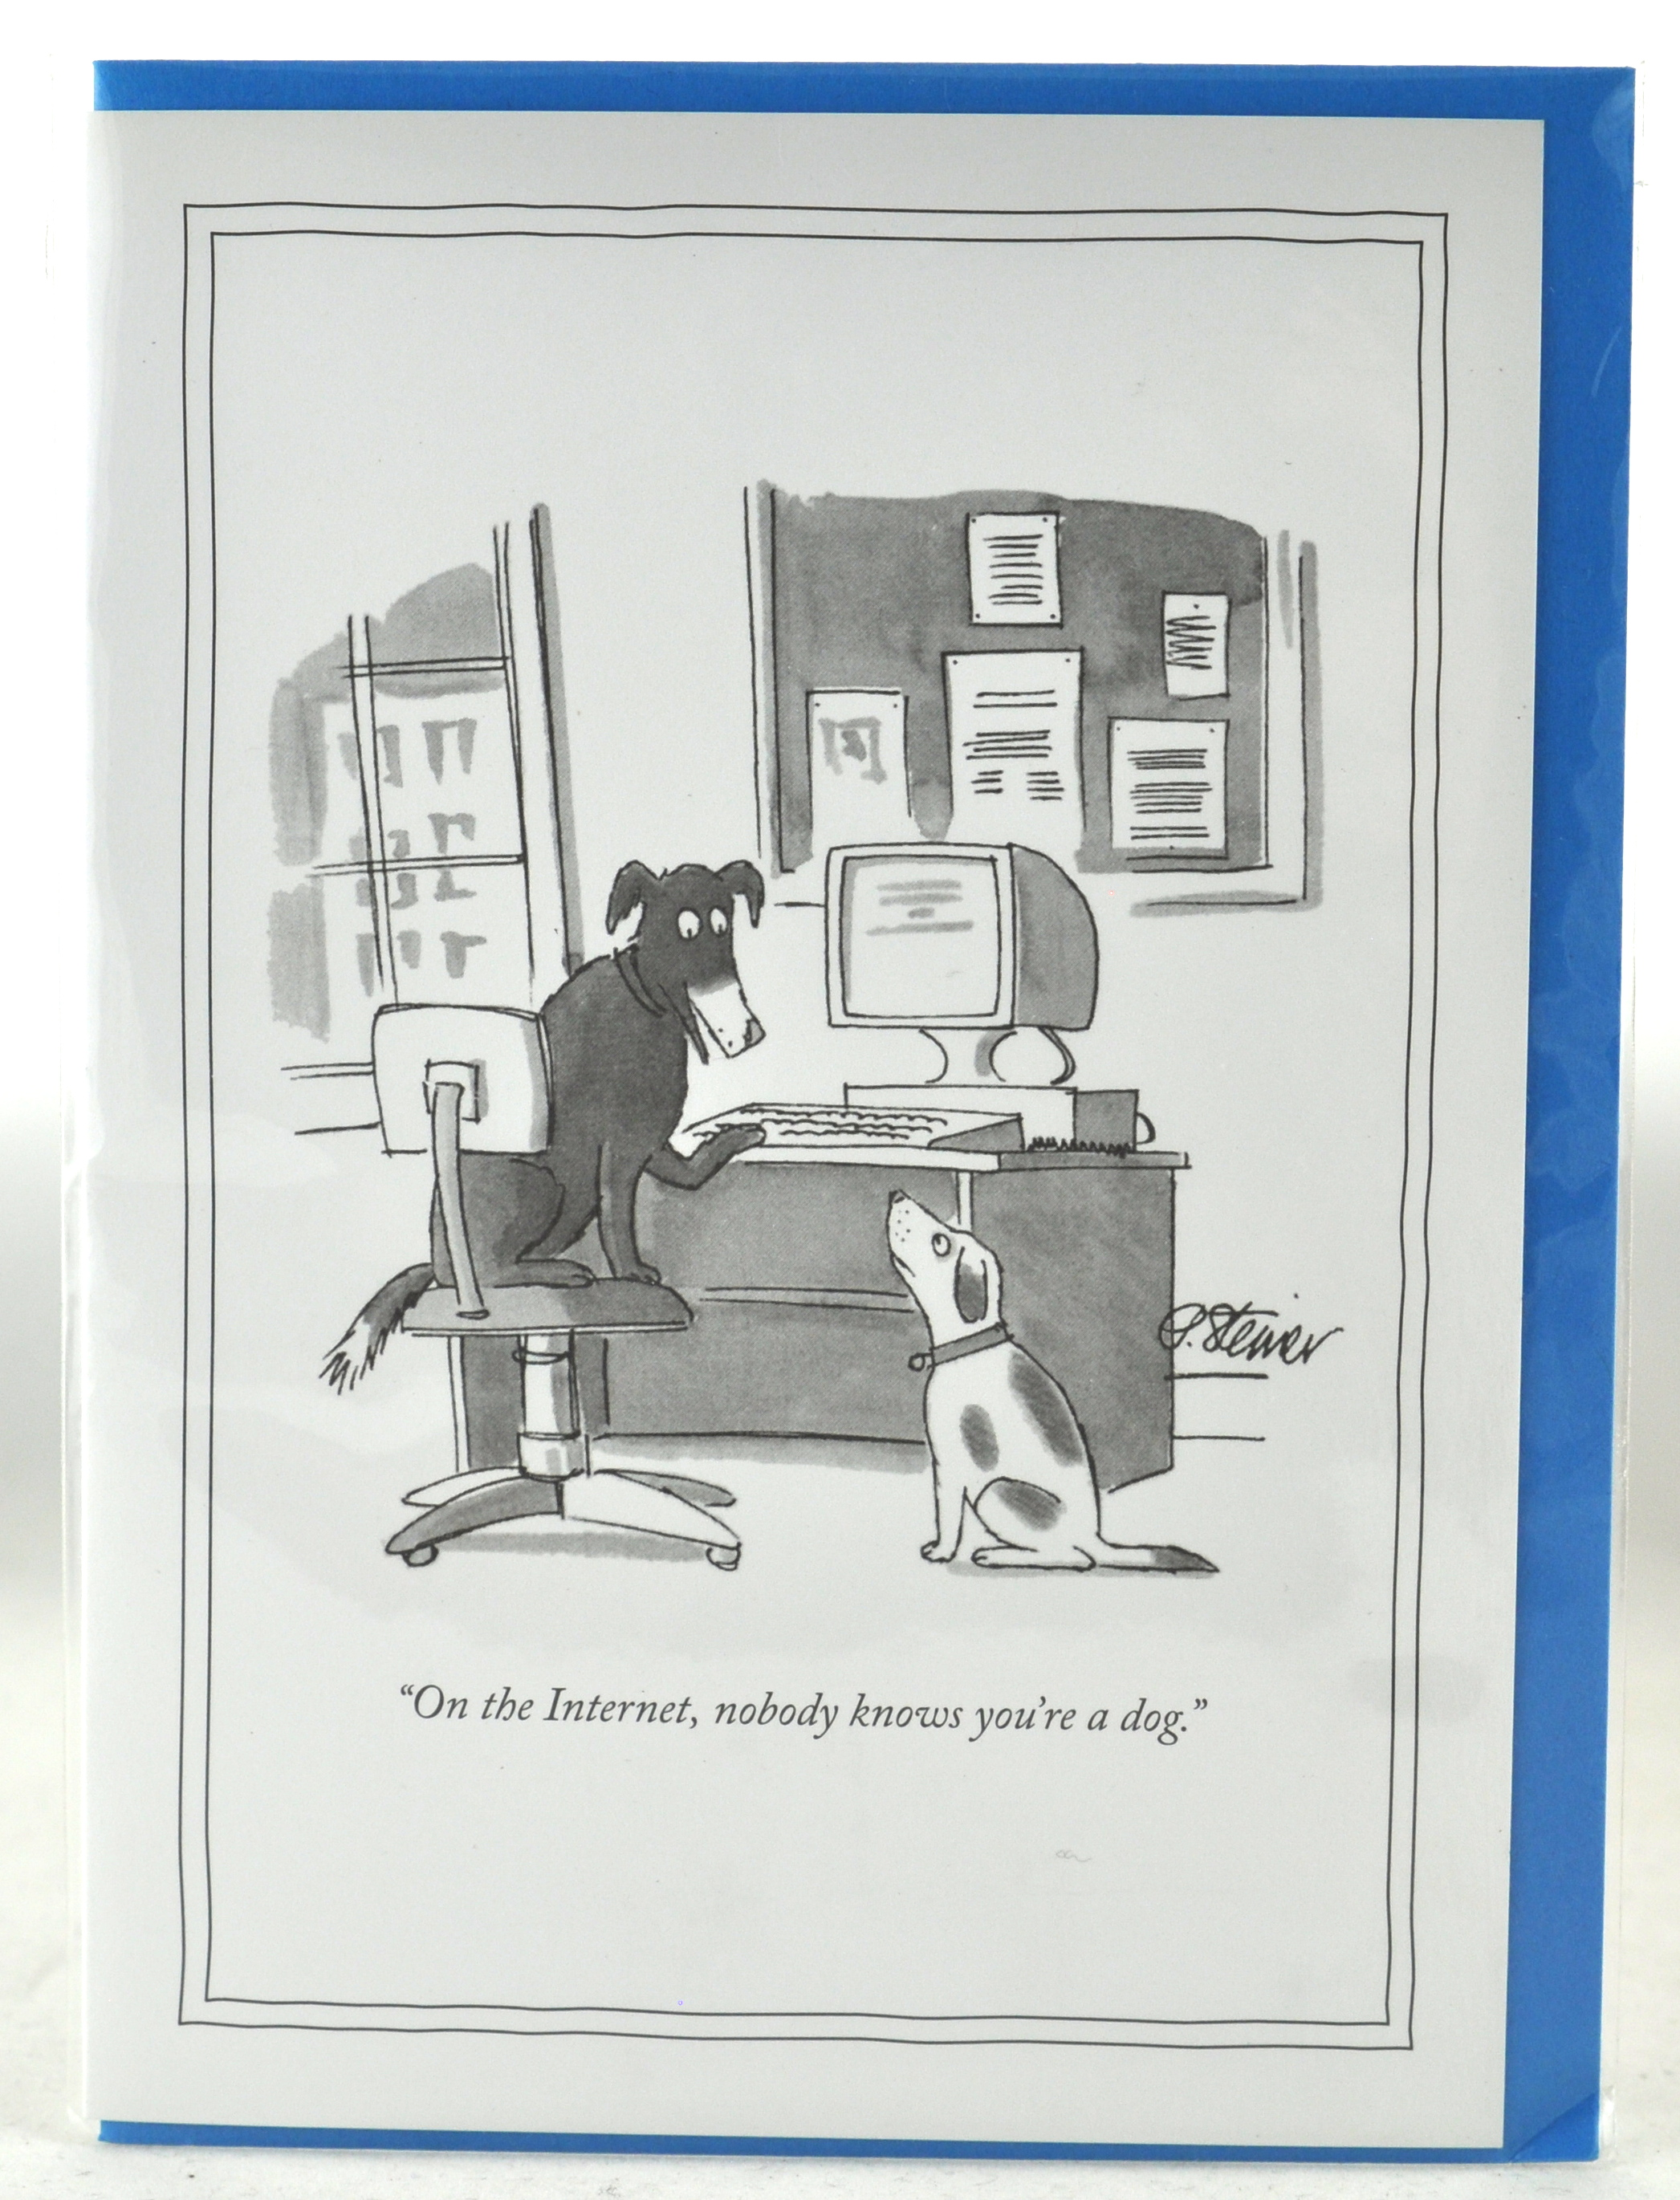 Internet dog 5 x 7 new yorker card new yorker greeting cards internet dog 5 x 7 new yorker card new yorker greeting cards funny humorous cartoons for a unique gift at hong kong home essentials m4hsunfo